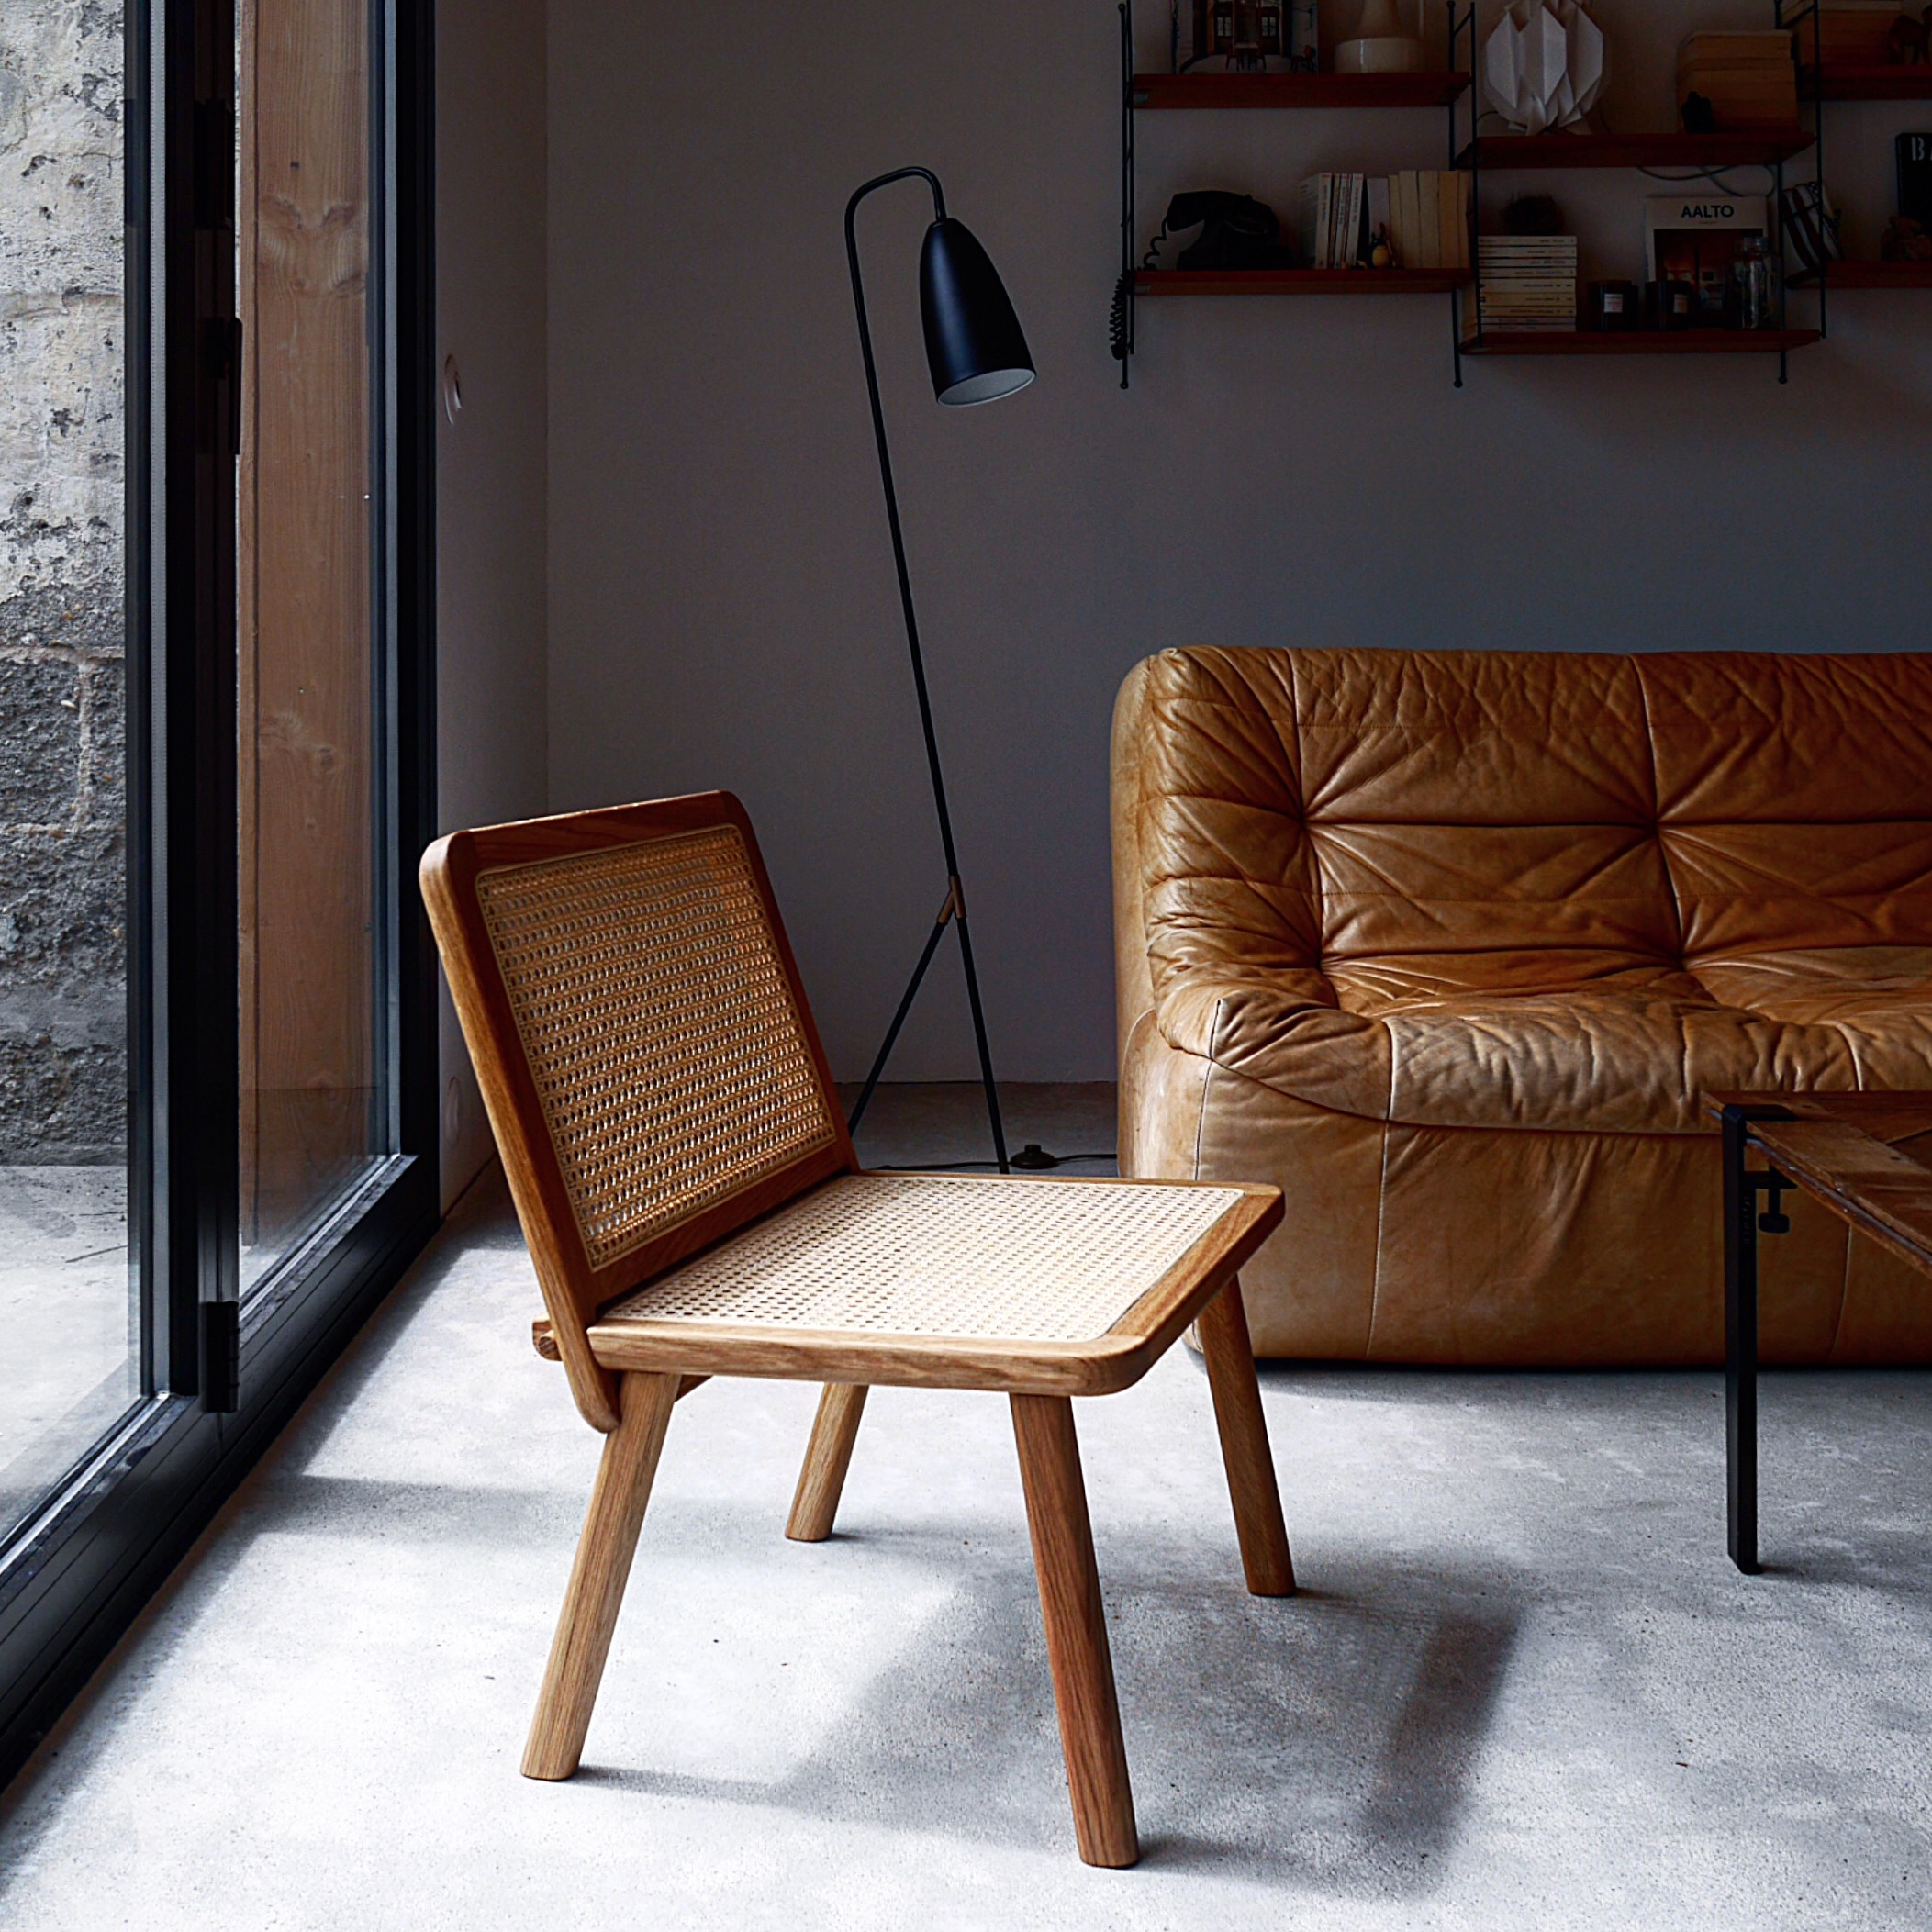 Photo: Pia Riverola Item: Kovac Family  15Chair  in Los Angeles.